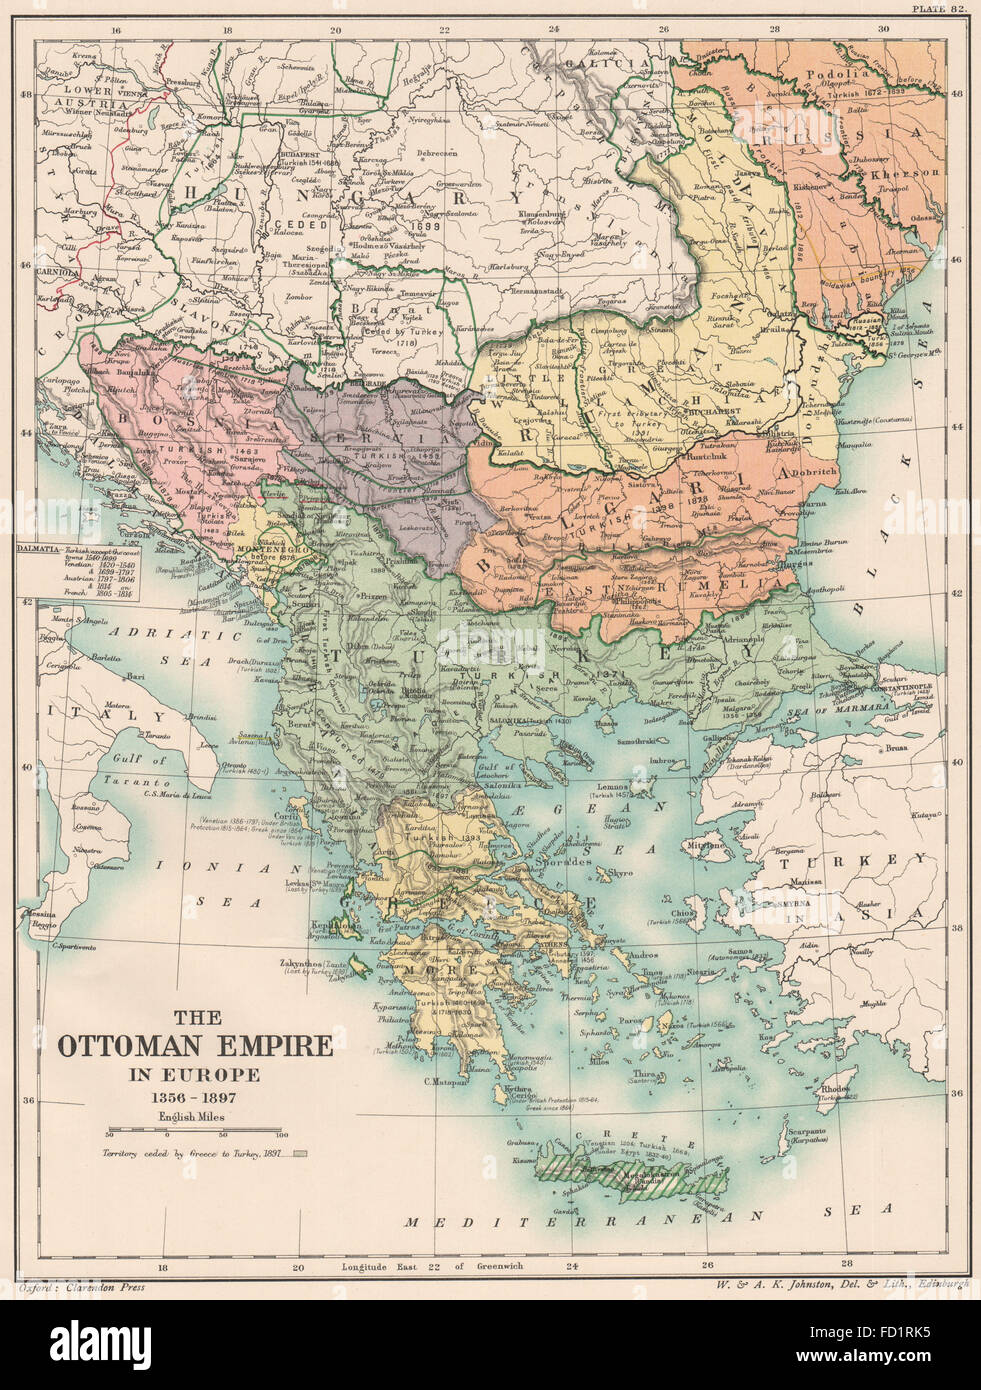 OTTOMAN EMPIRE 1356-1897: Greece Bulgaria Servia Rumania Bosnia, 1902 old  map